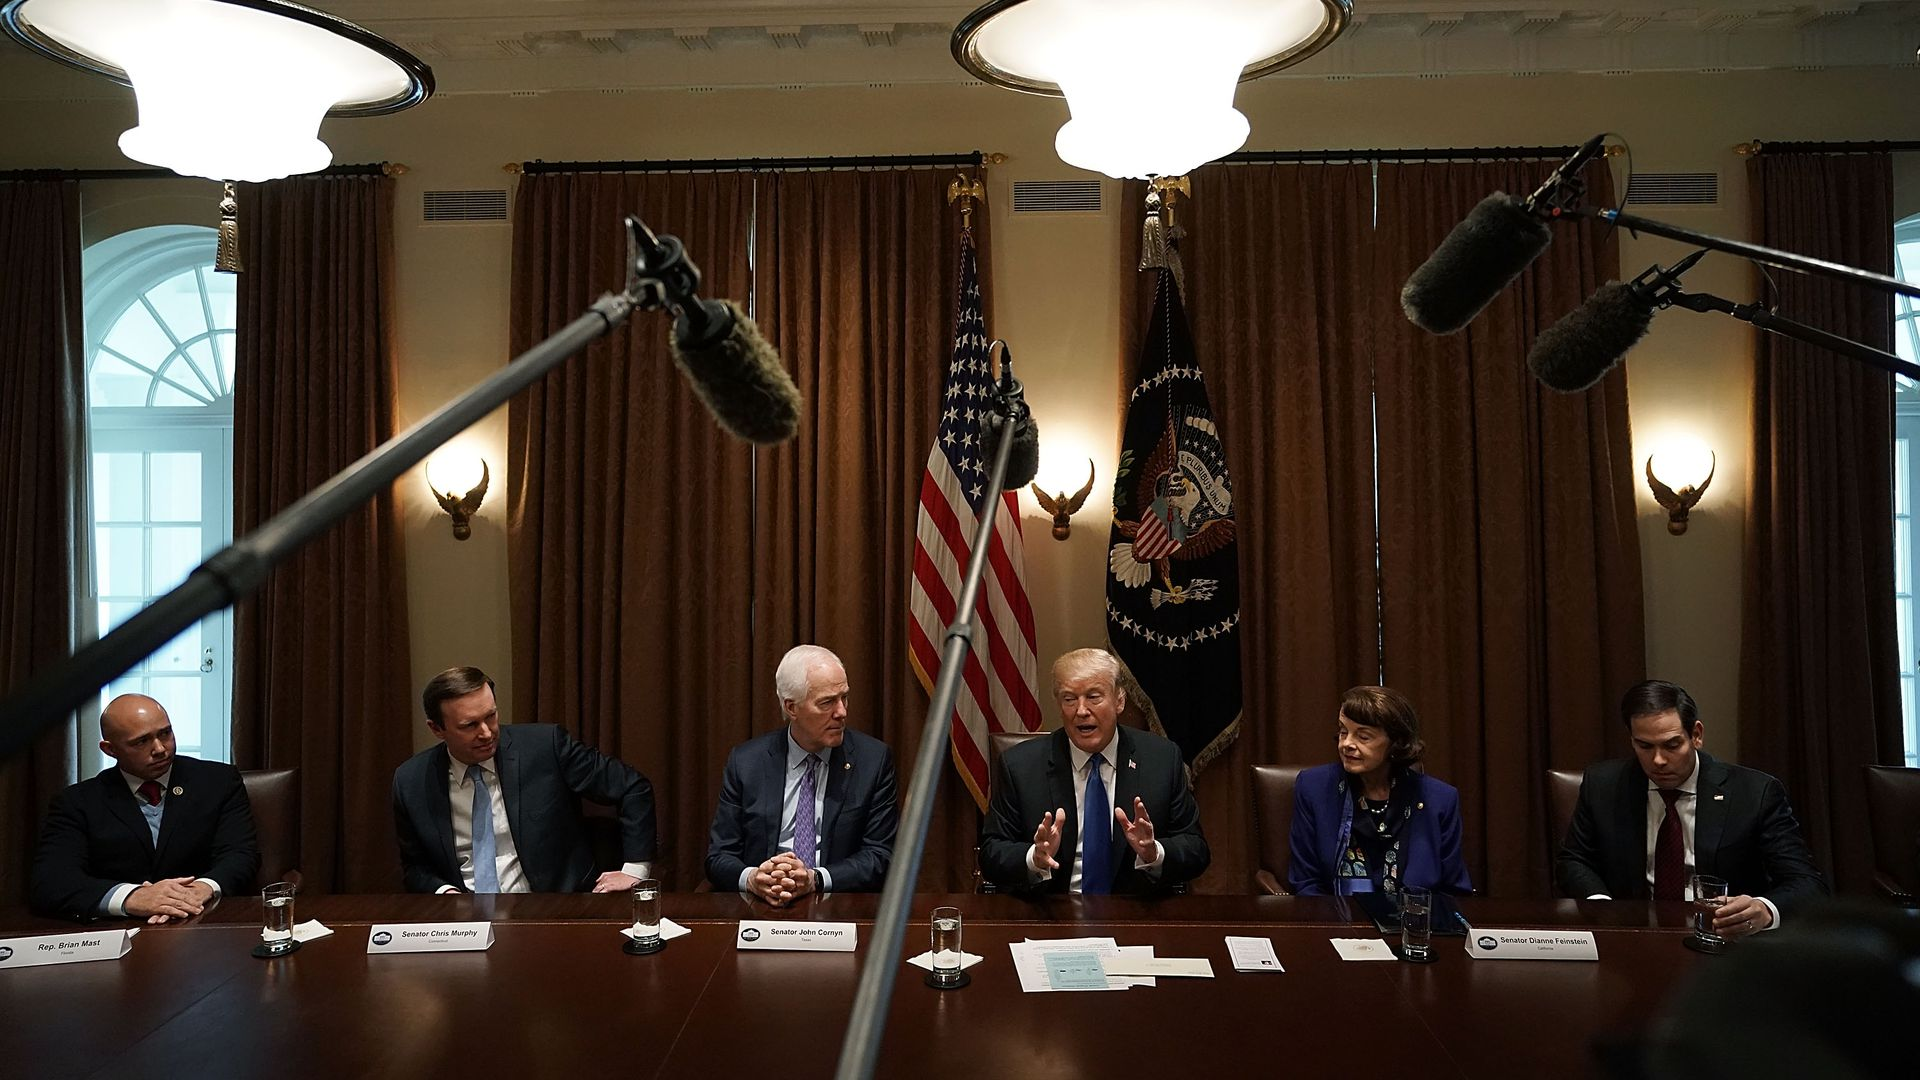 President Trump meets with bipartisan members of Congress.